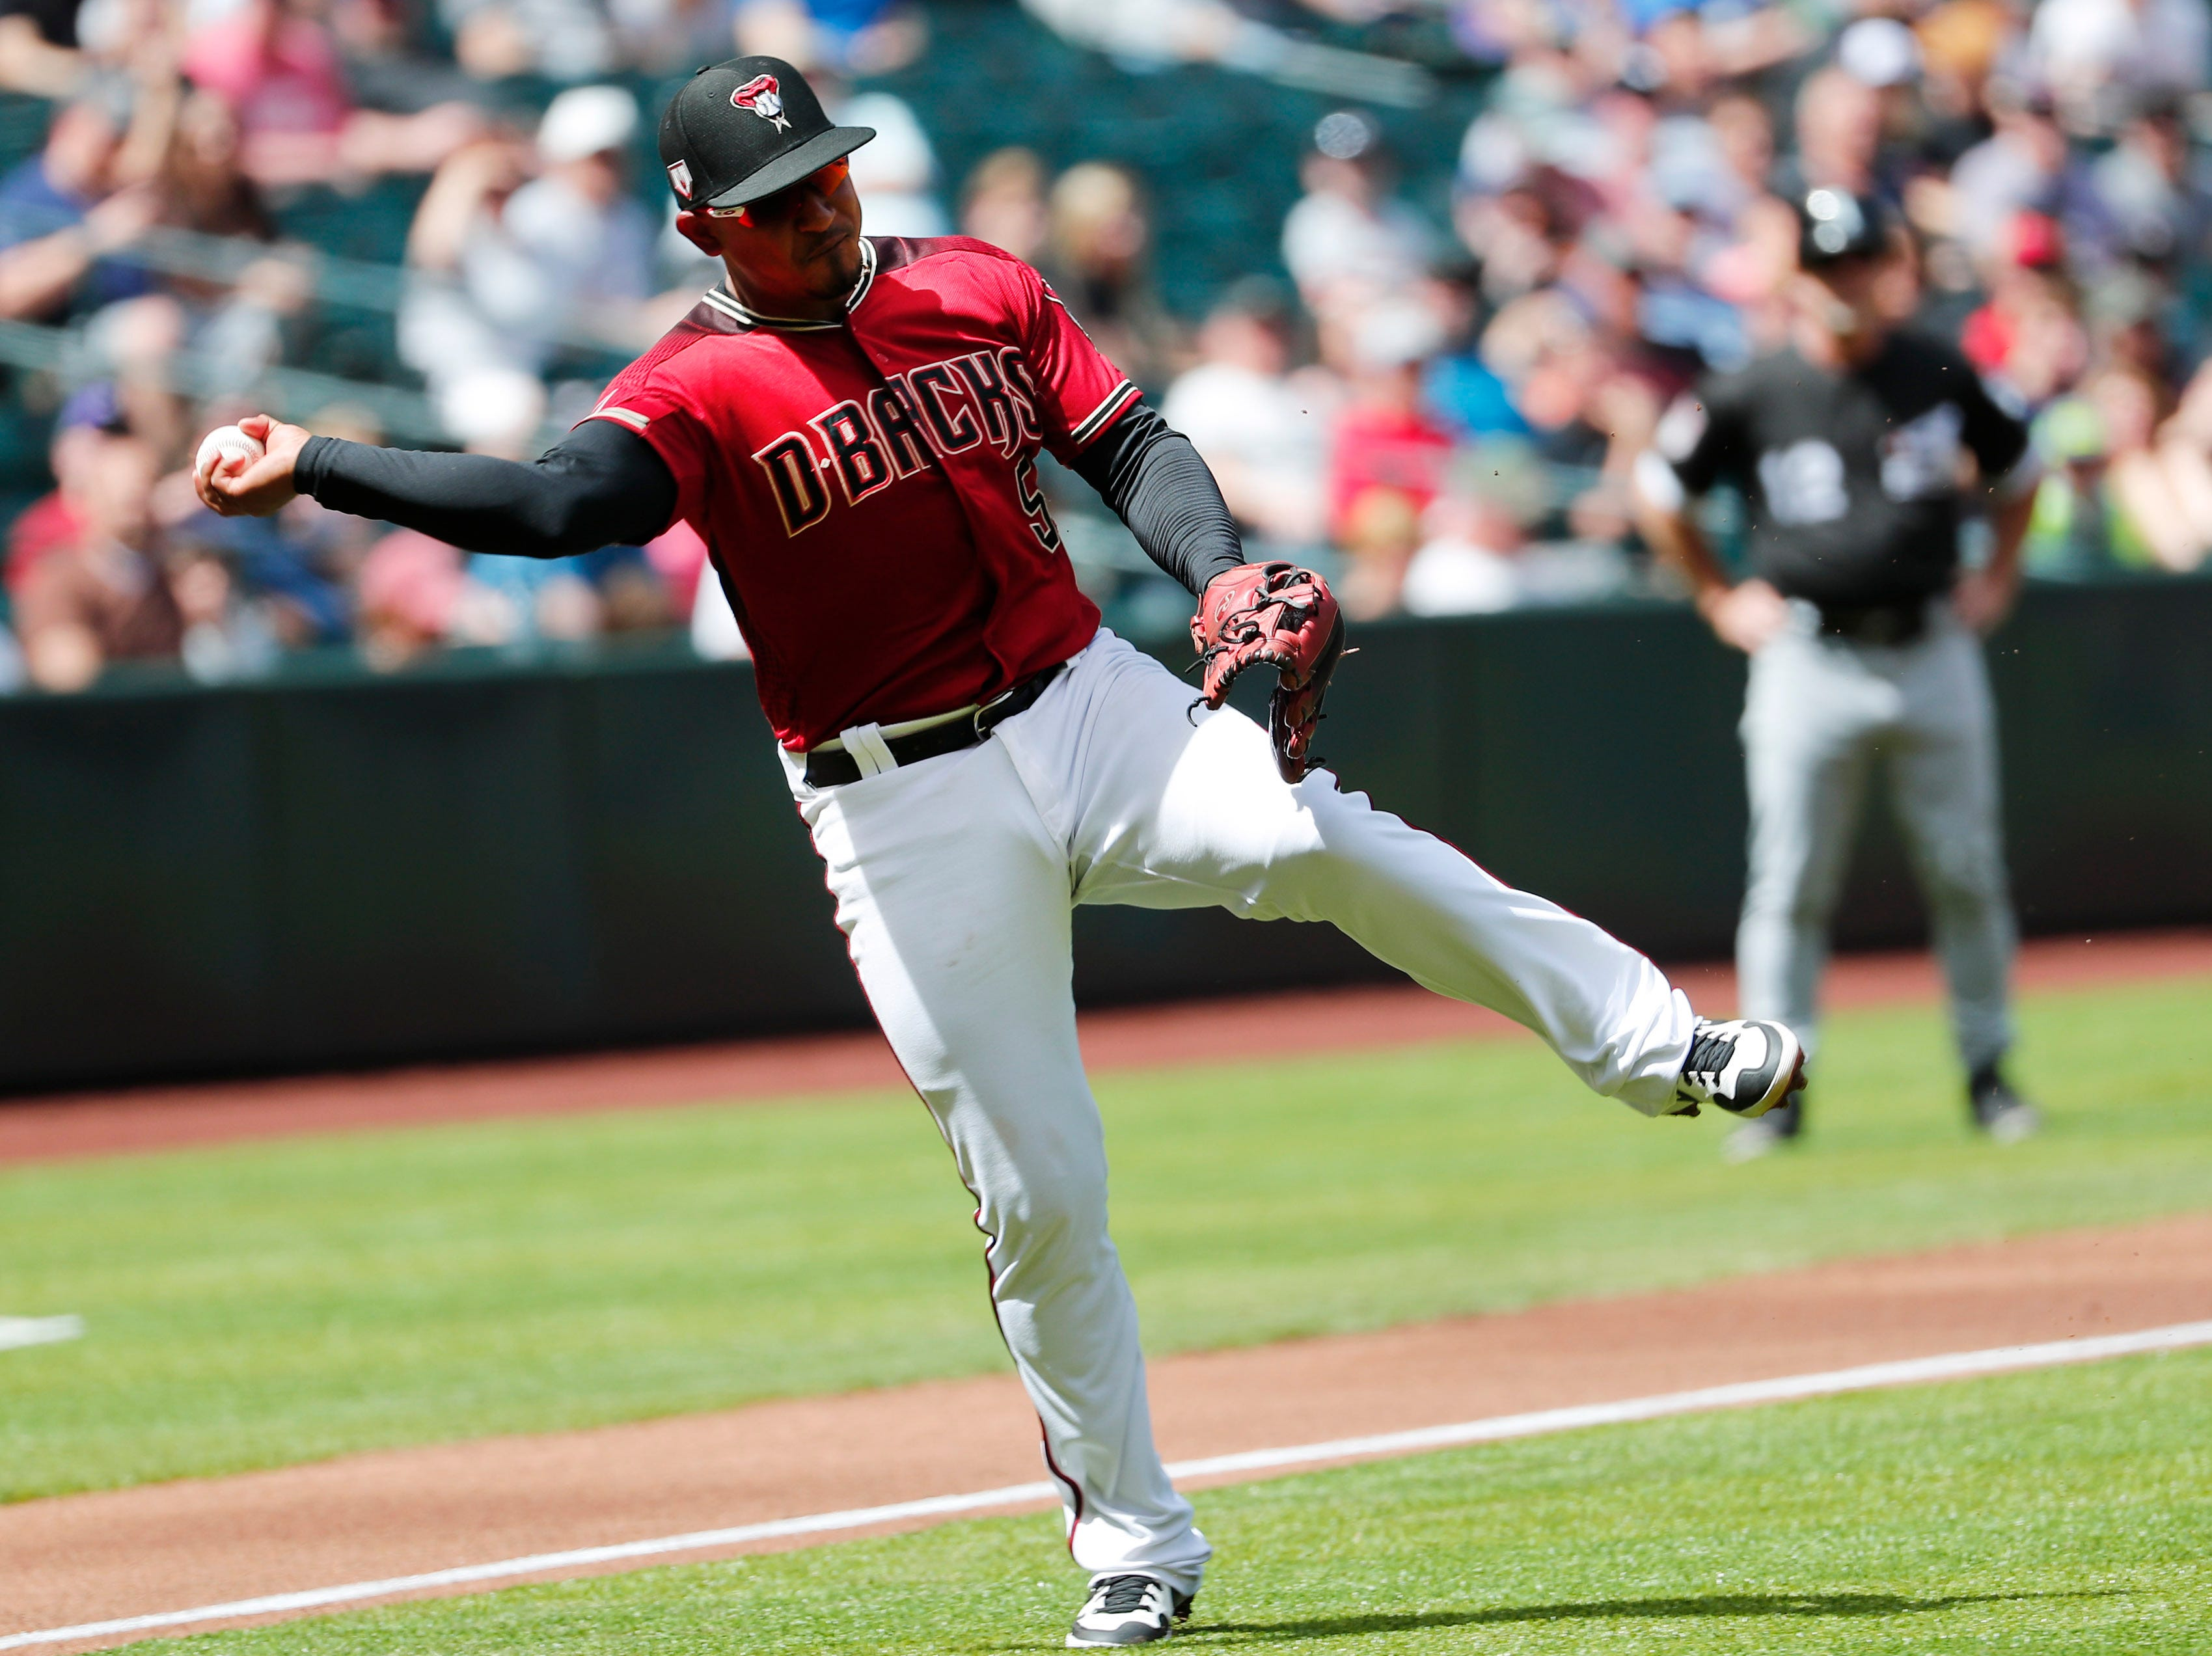 Arizona Diamondbacks third baseman Eduardo Escobar (5) throws out Chicago White Sox third baseman Yolmer Sanchez (5) on a bunt attempt during spring training action at Chase Field March 26, 2019.